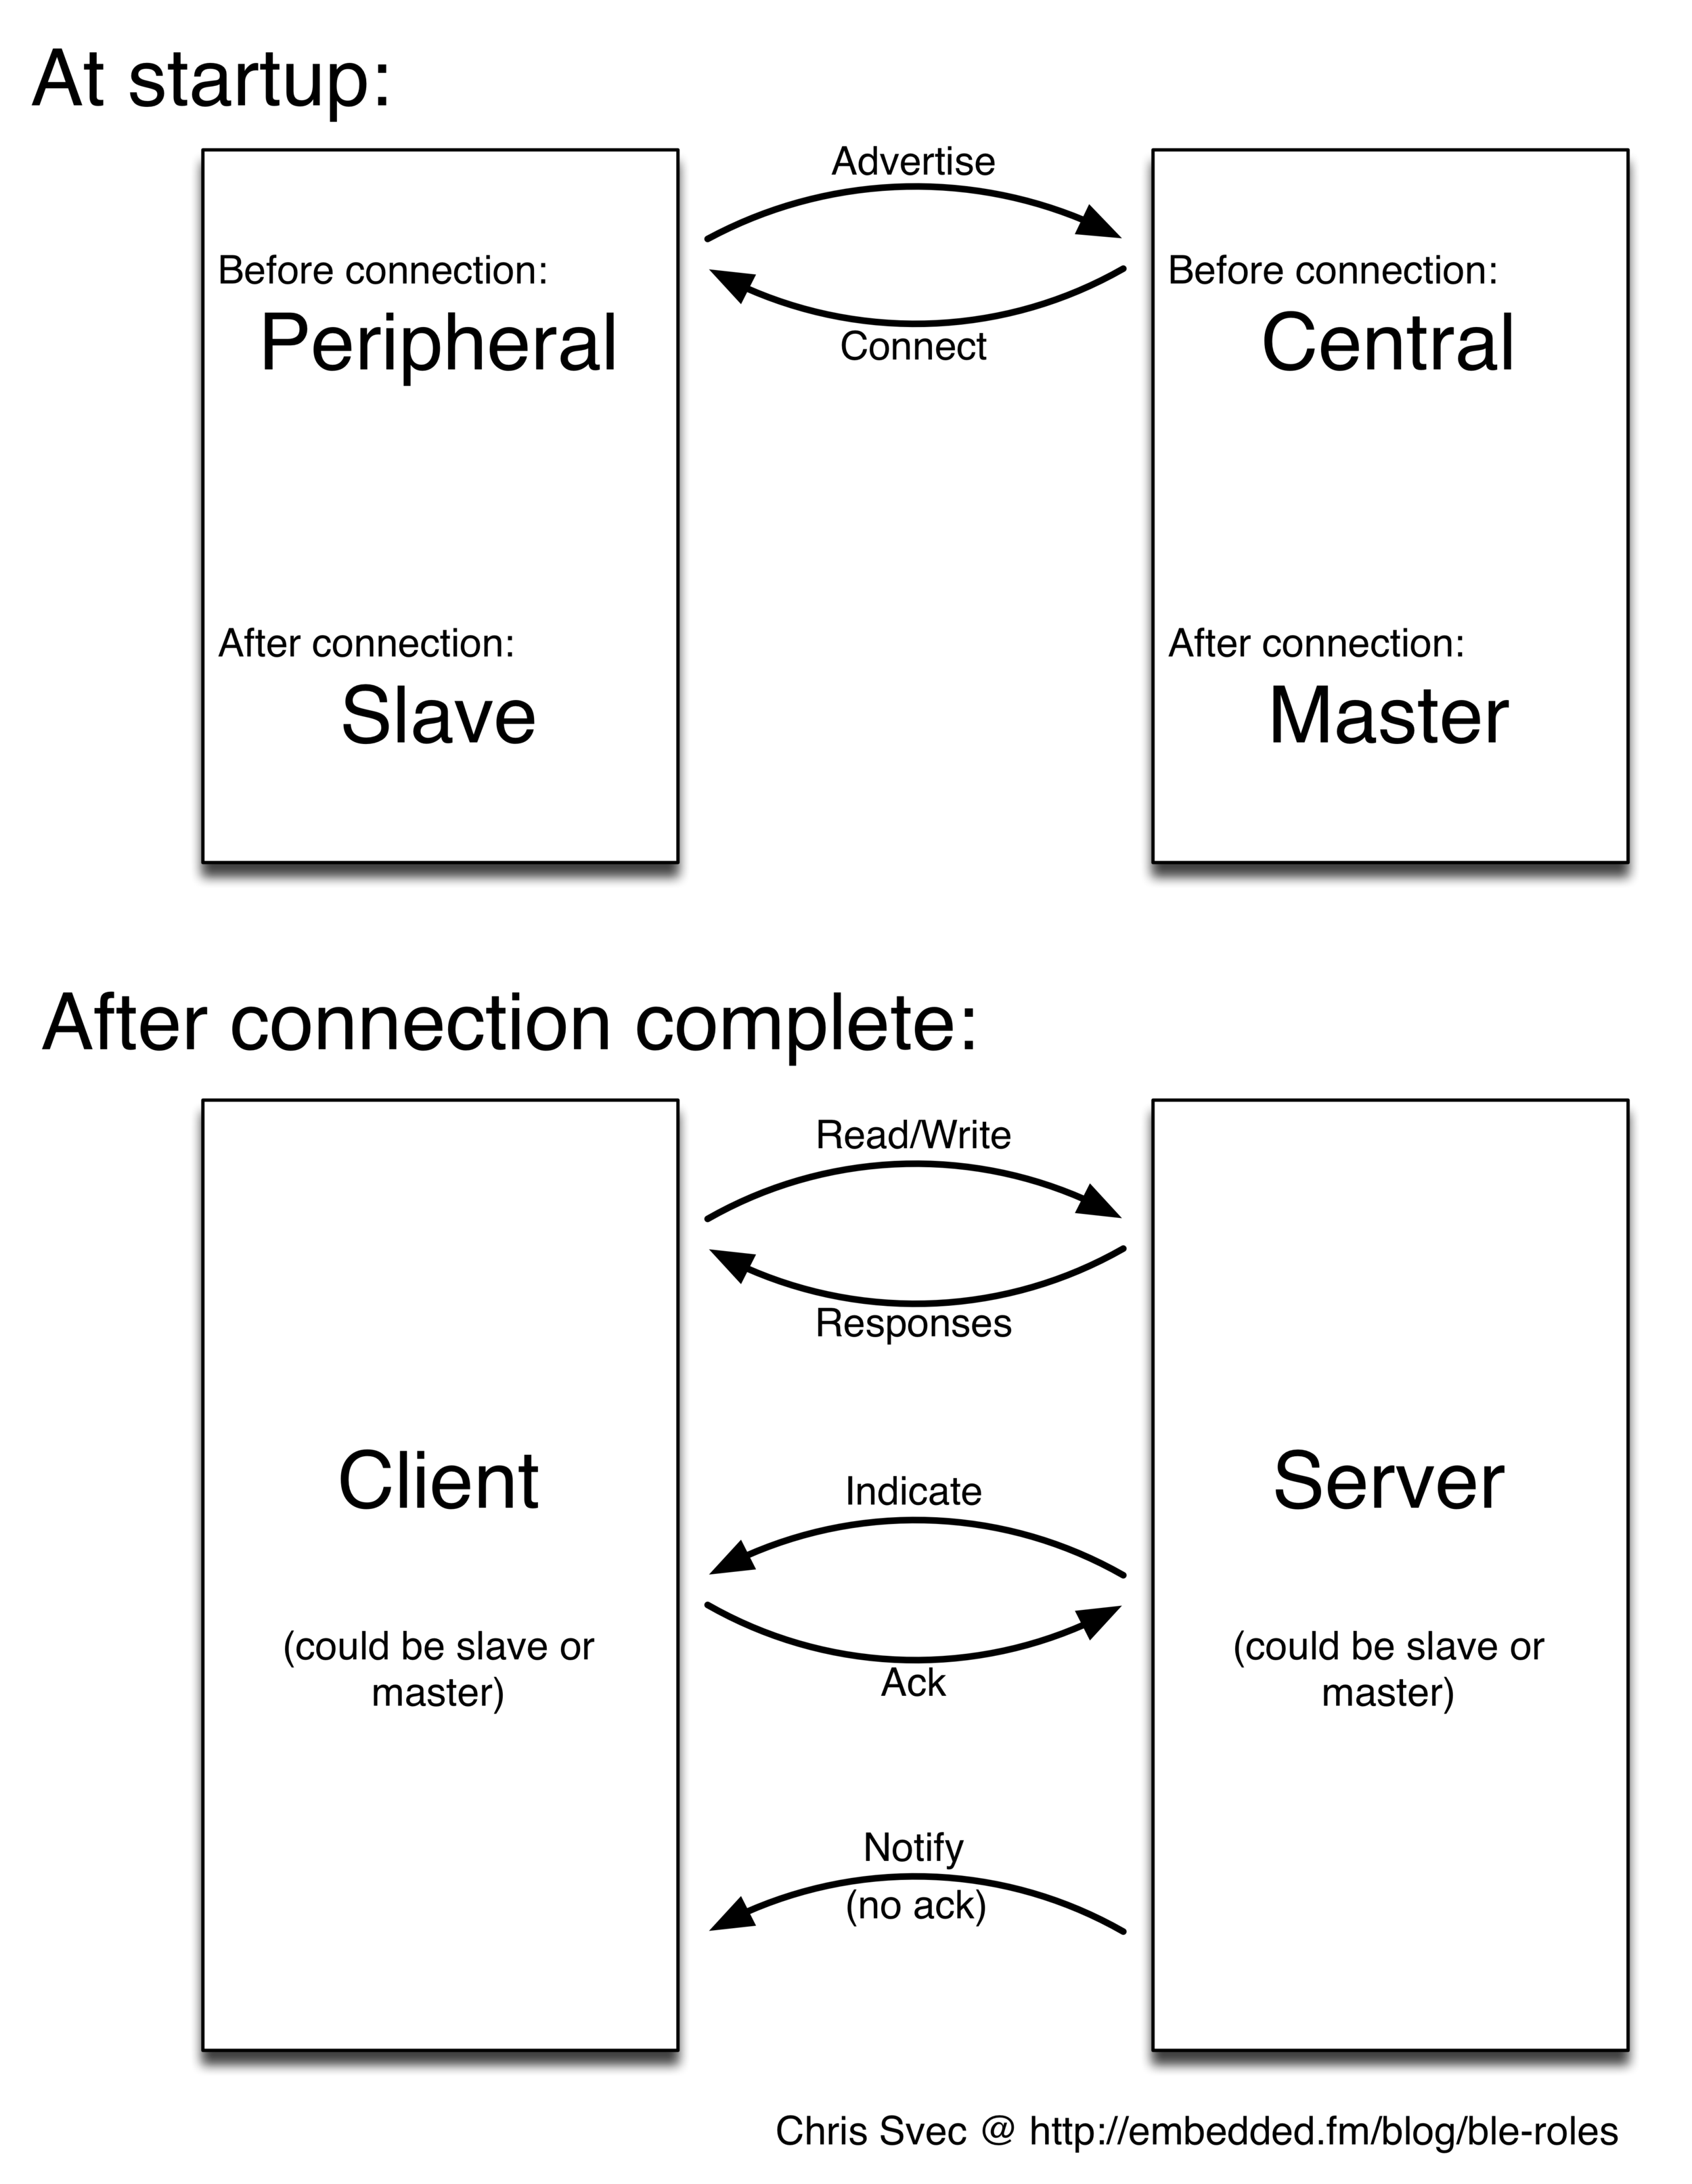 BLE: Master Central Slave Peripheral Client Server, We Didn't Start